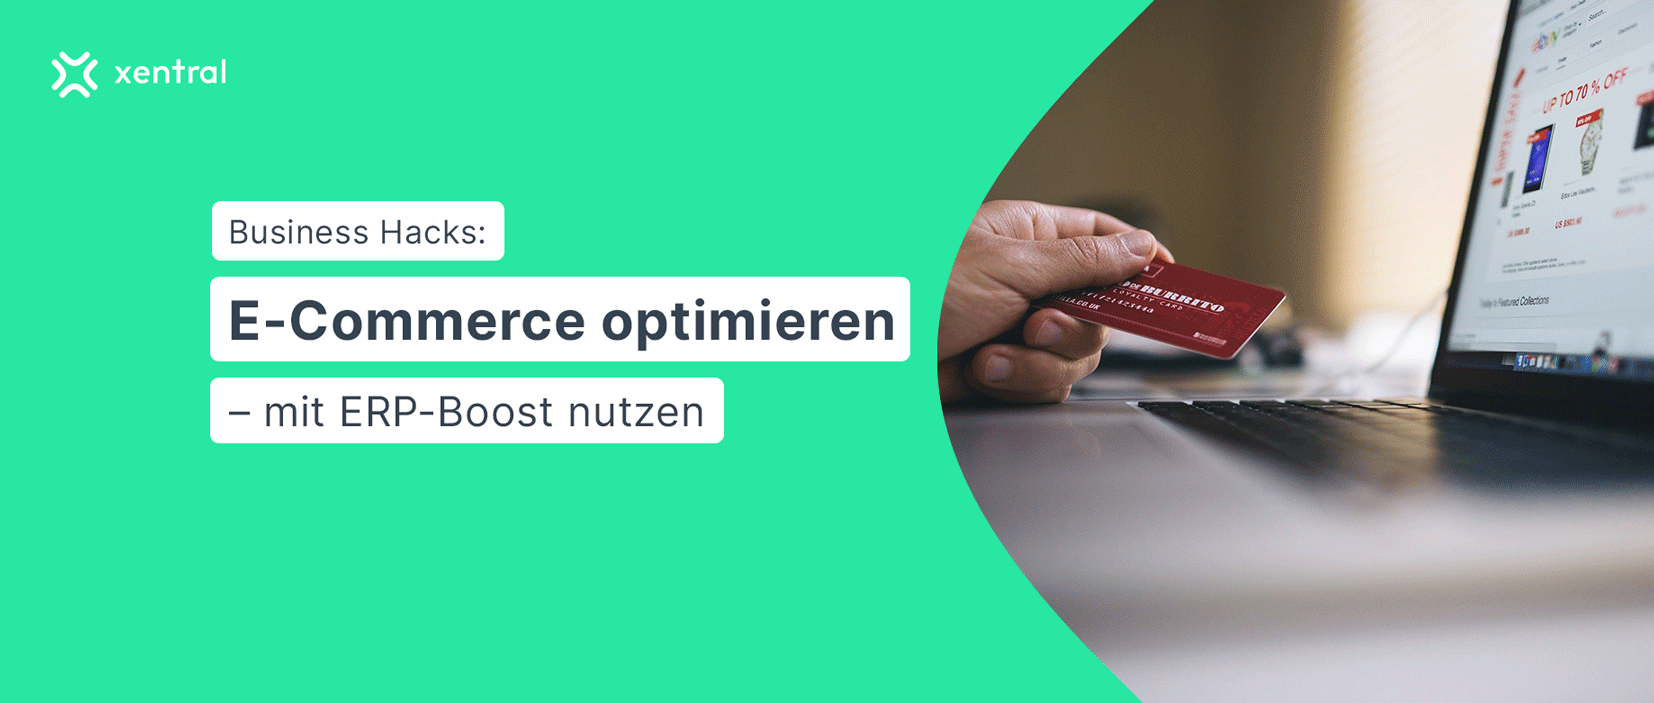 Blogheader_ECommerce_optimieren_xentral